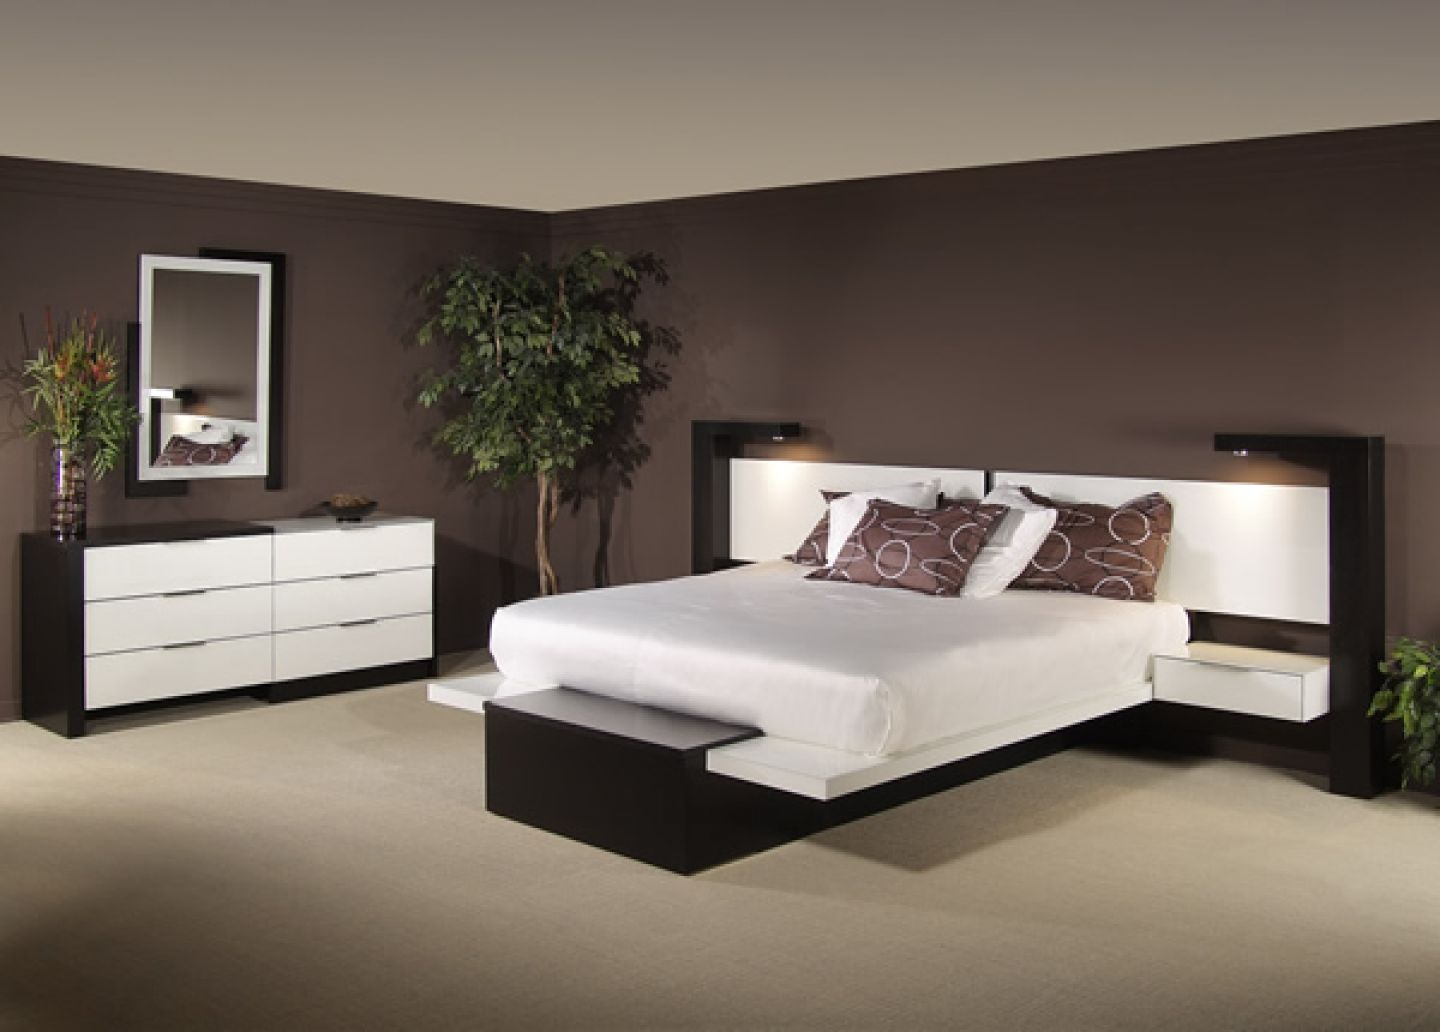 Modern Furniture For Home best contemporary modern bedroom furniture gallery - room design